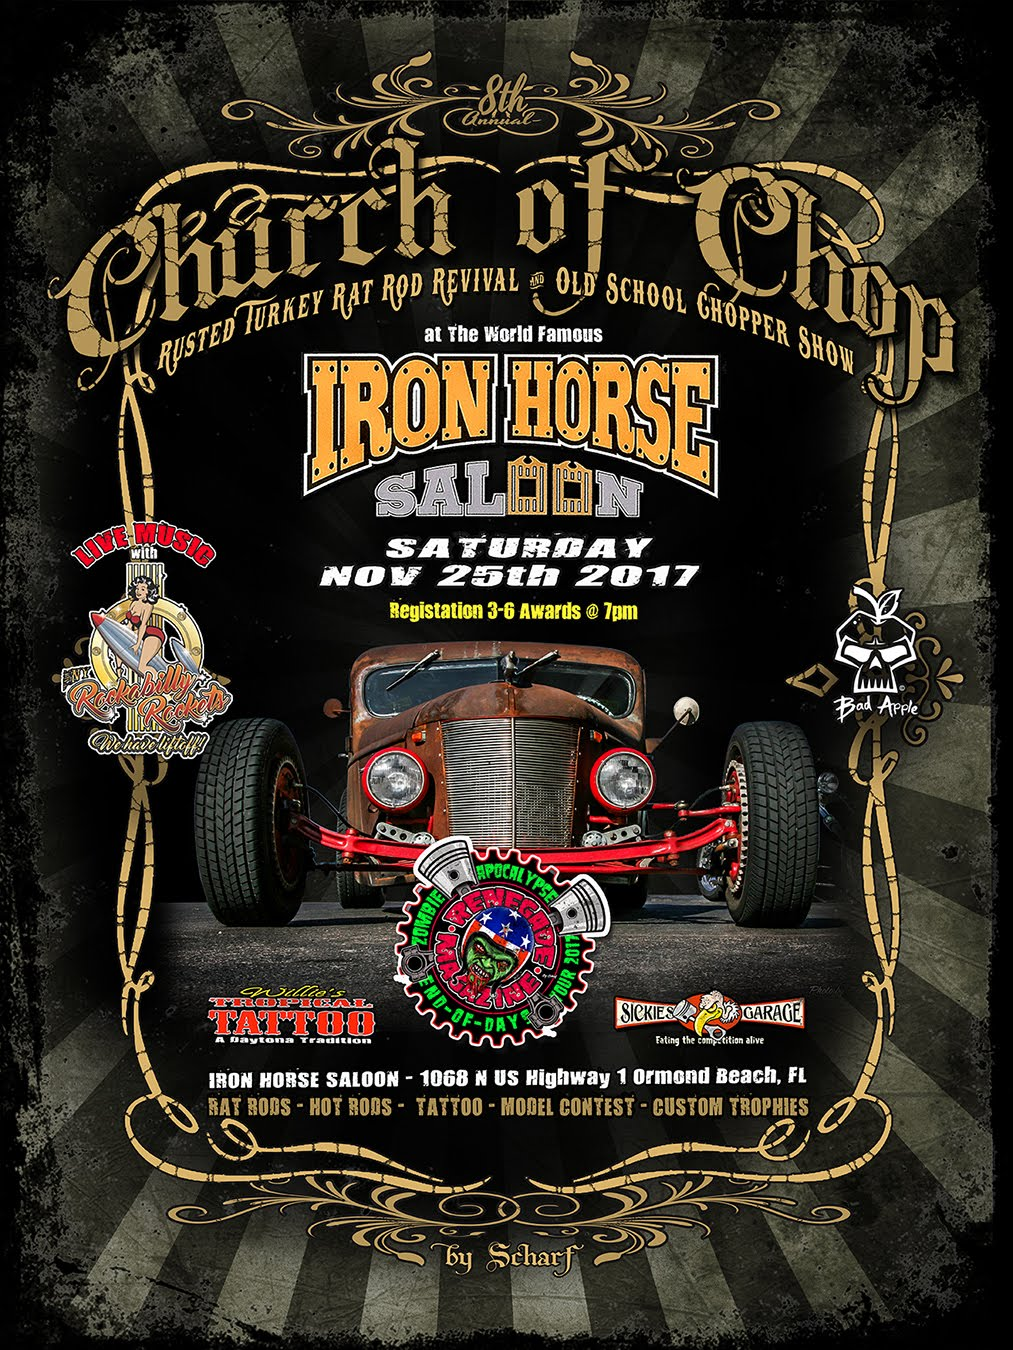 CHURCH OF CHOP RAT ROD REVIVAL